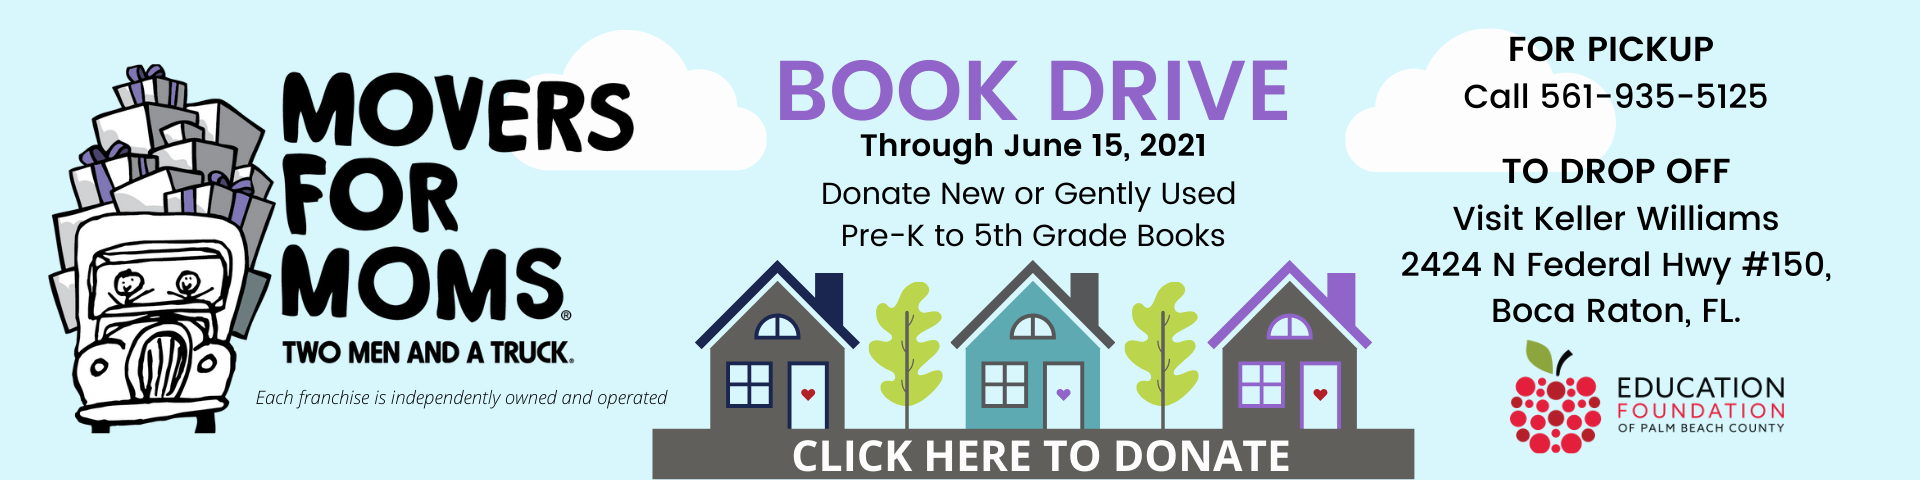 Two Men & A Truck AD for Book Drive through June 15, 2021. Call 561-935-5125 for details